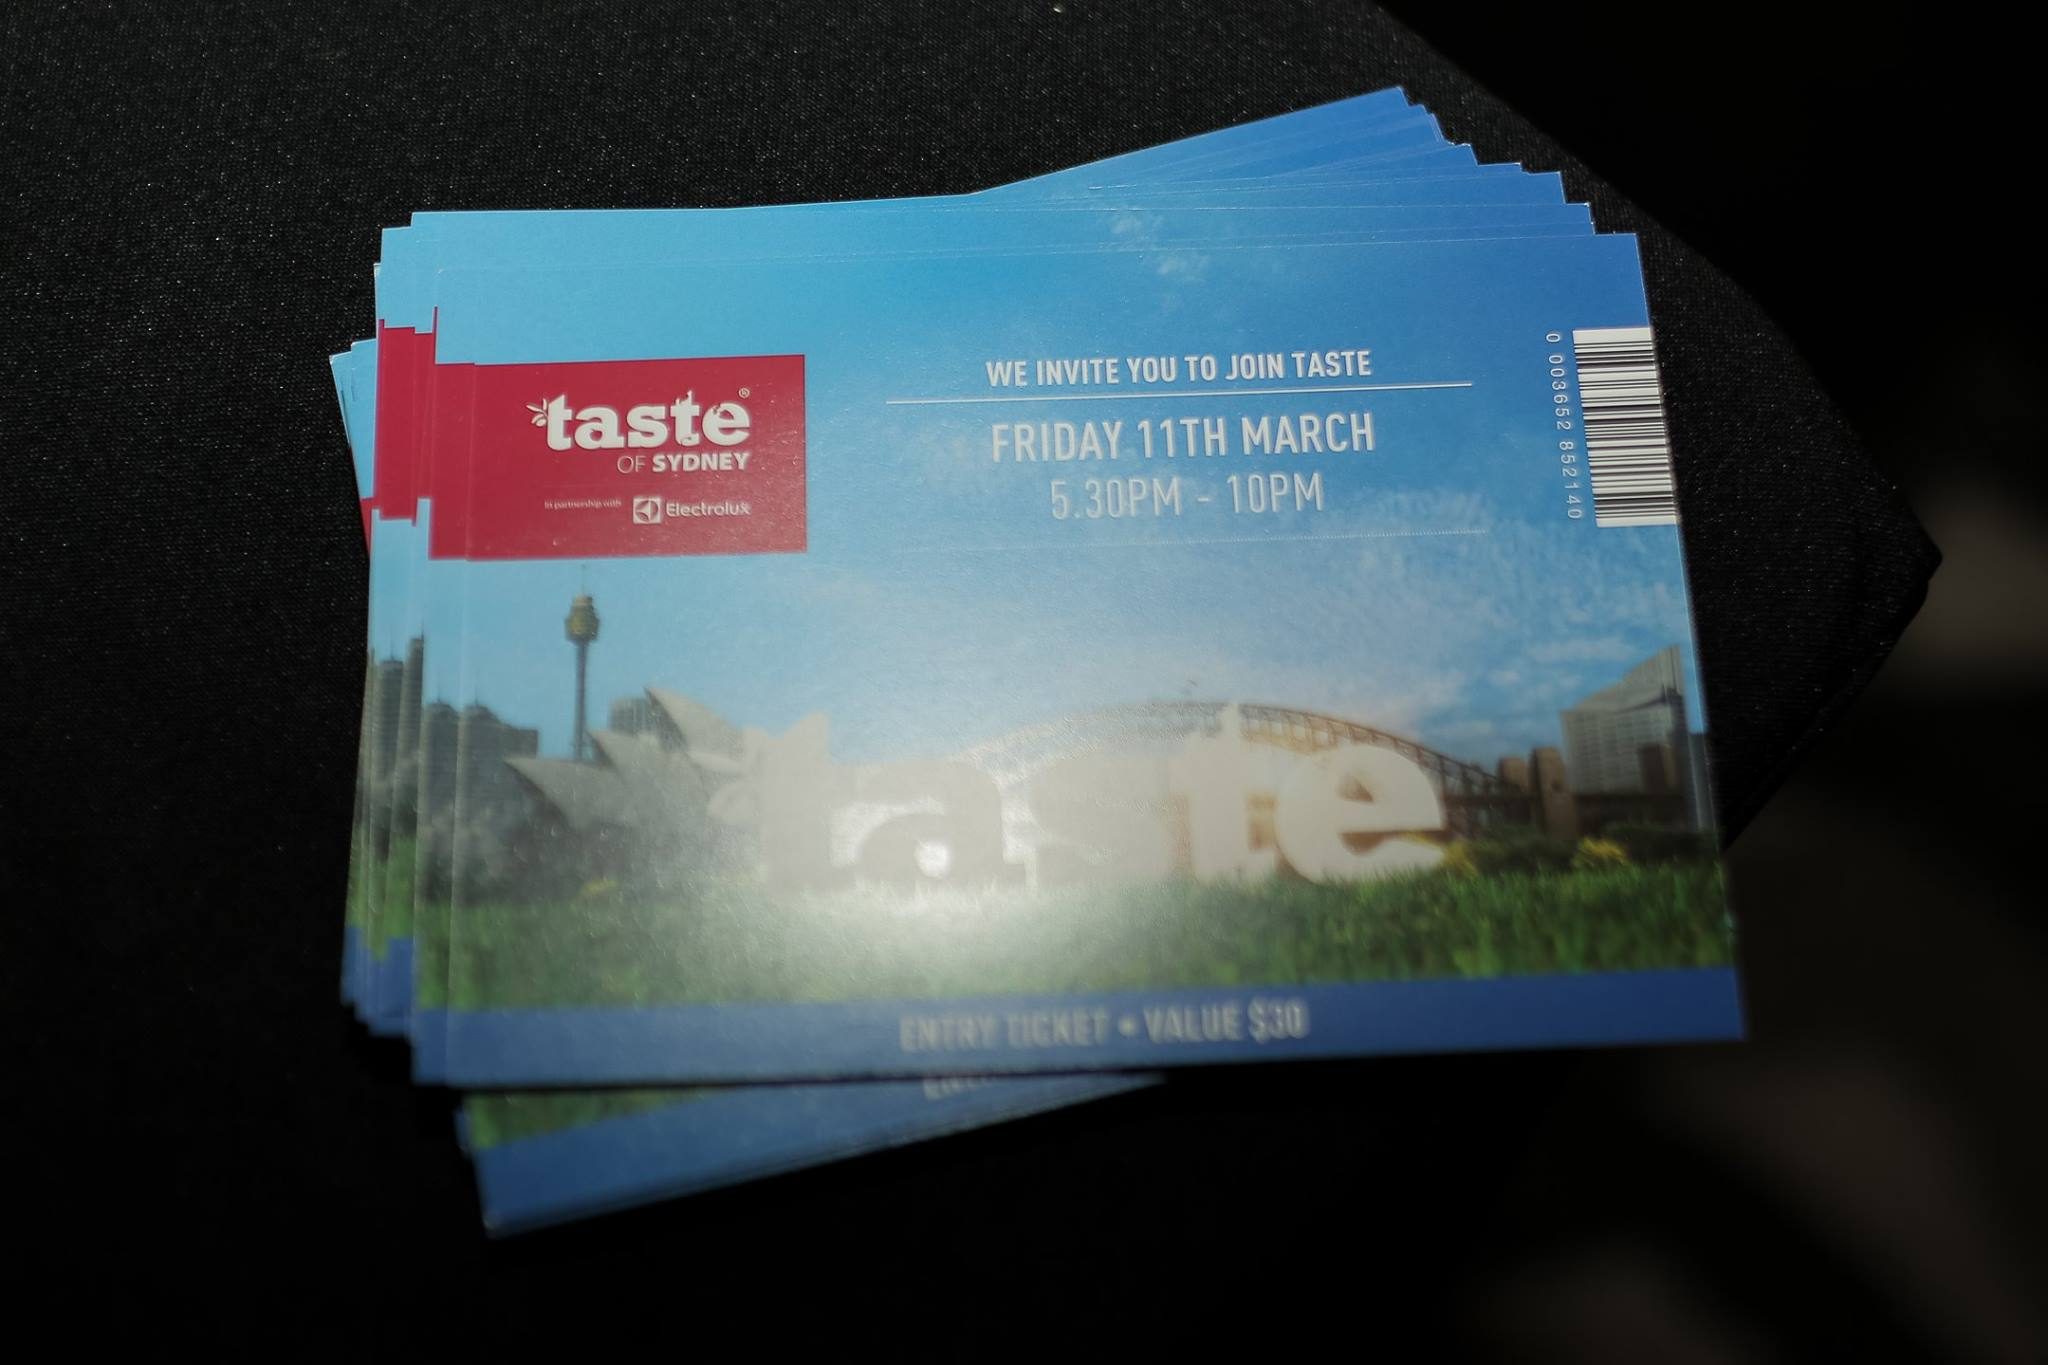 Thank you to TASTE OF SYDNEY who generously donated entry tickets for everyone, to this extraordinary foodie event, happening over this weekend at Centennial Park.